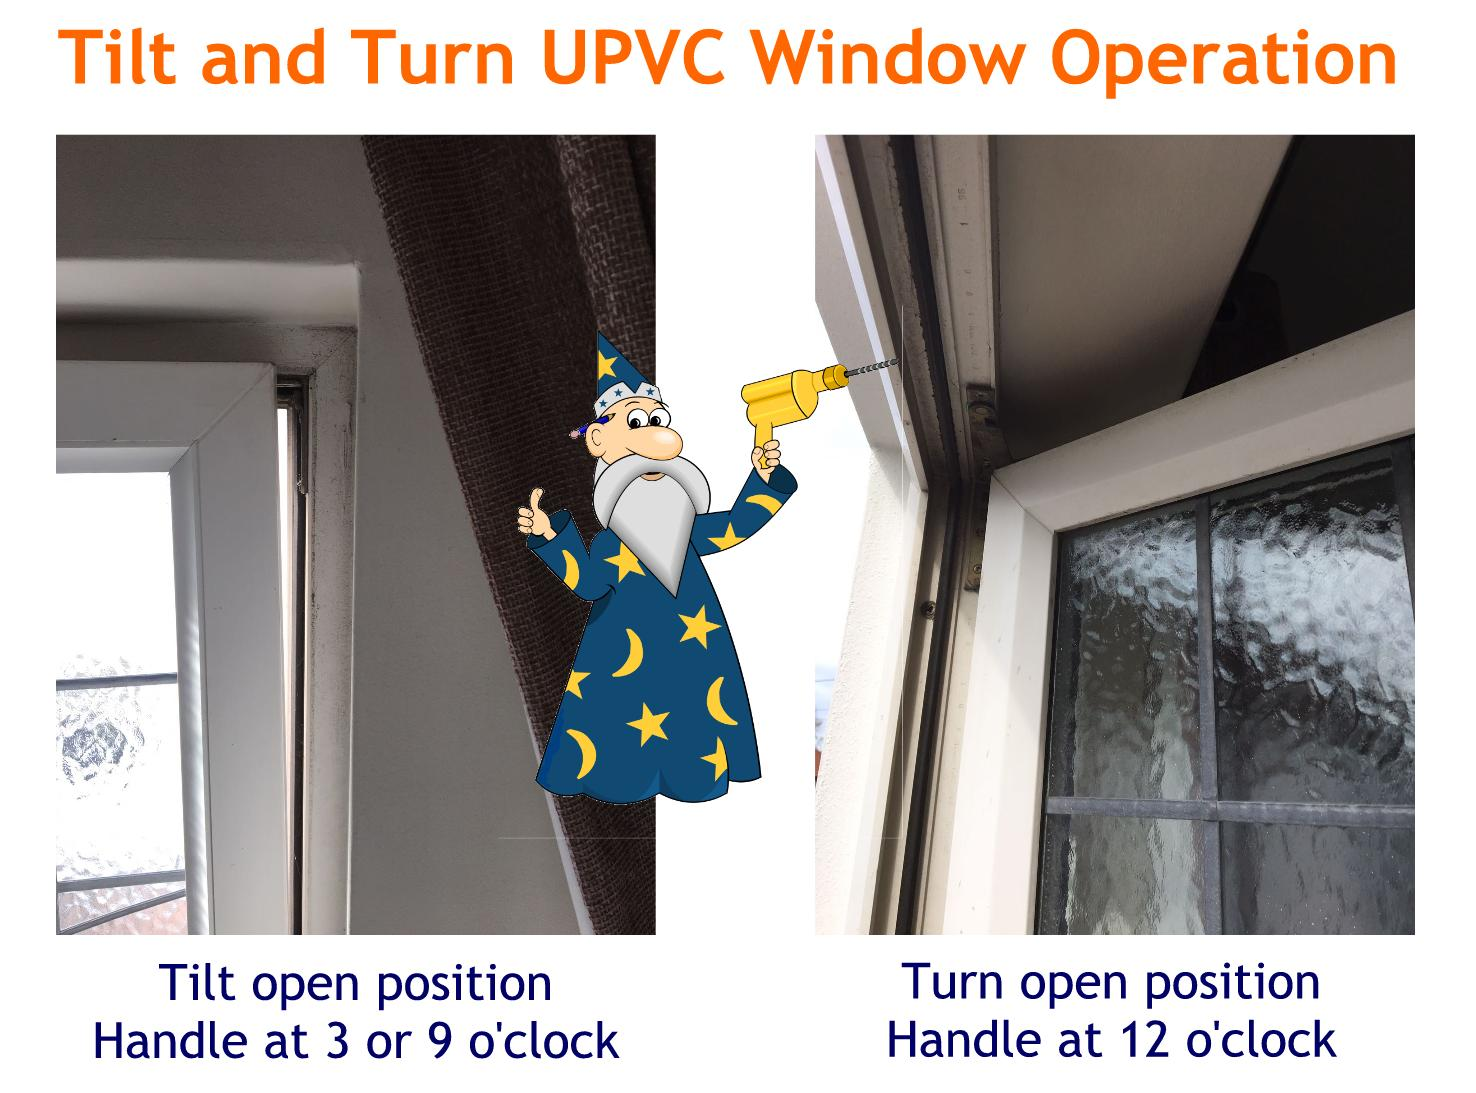 Upvc tilt and turn window repair service